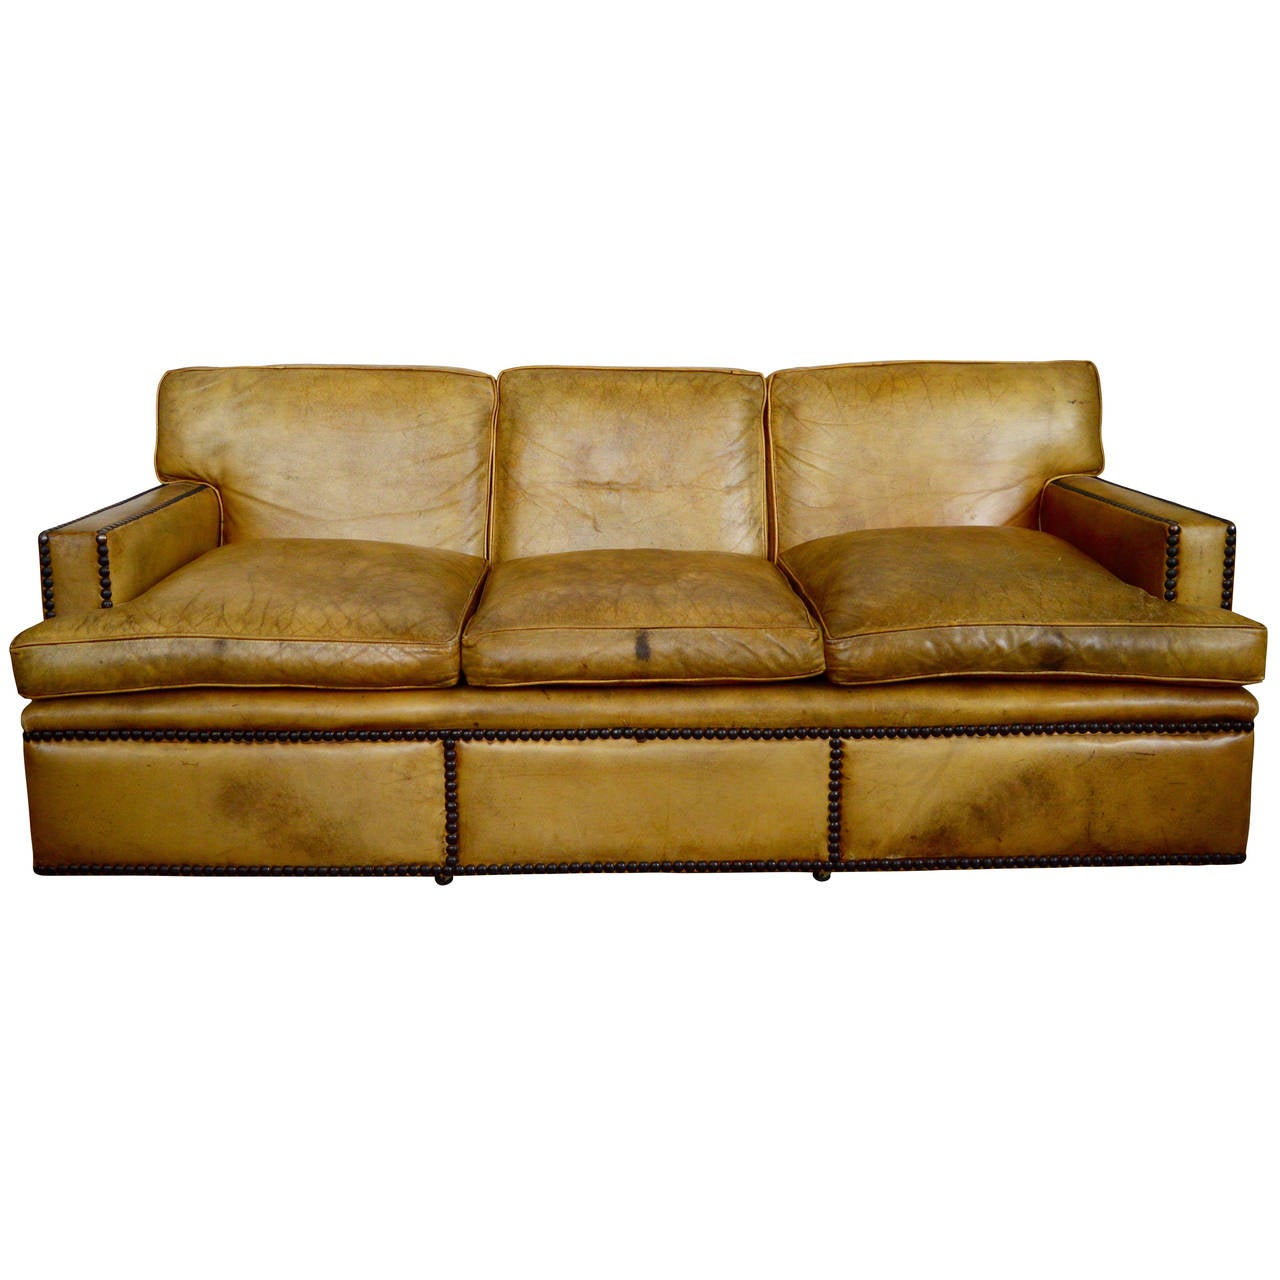 Big Sofa Colonial English Georgian Style Leather Sofa With Large Brass